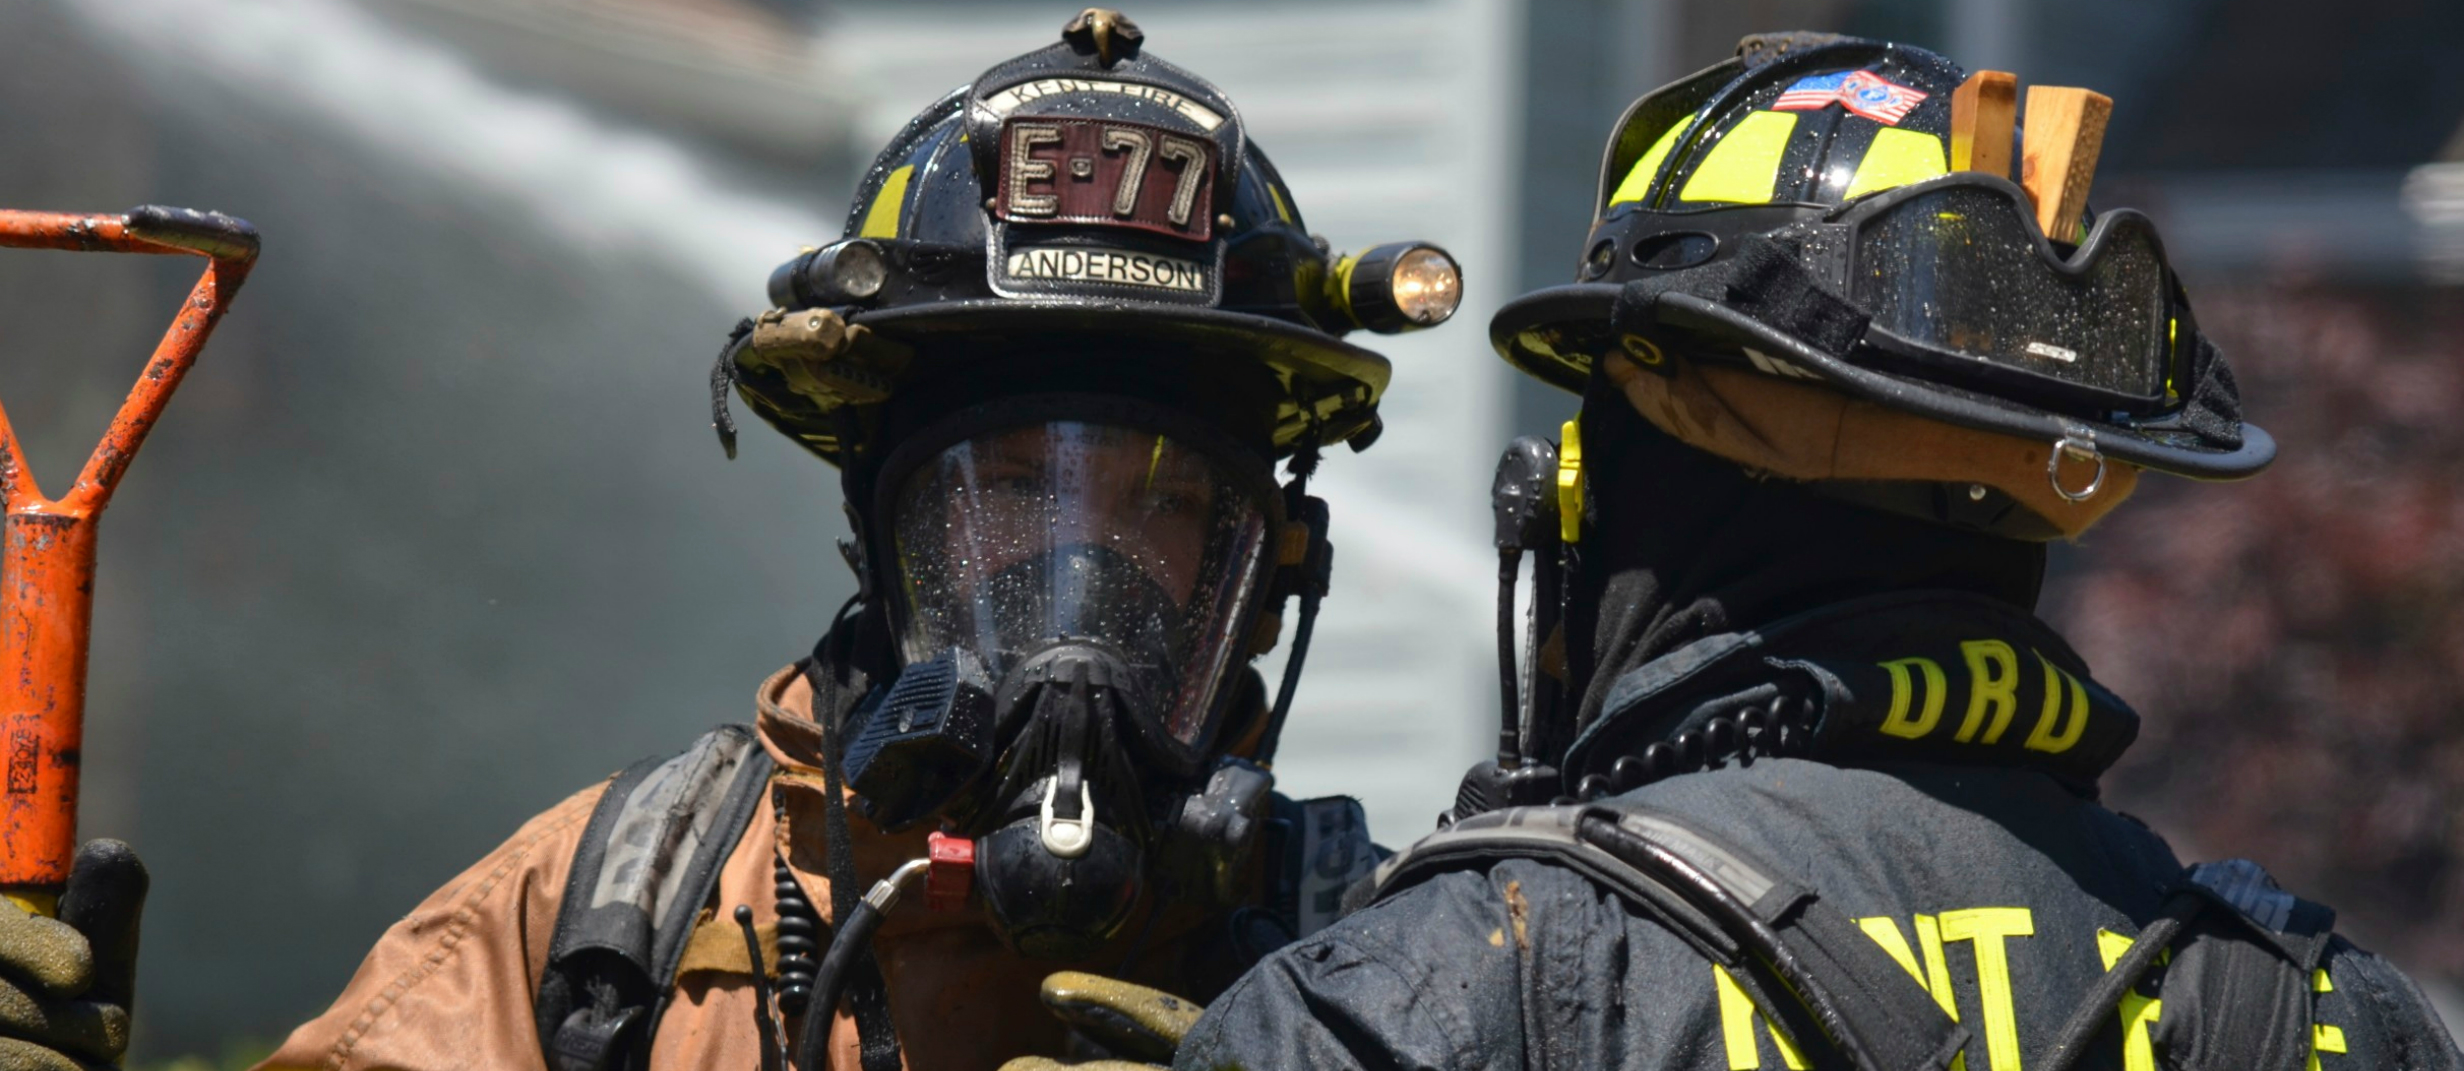 Kent Fire Fighters, Local 1747